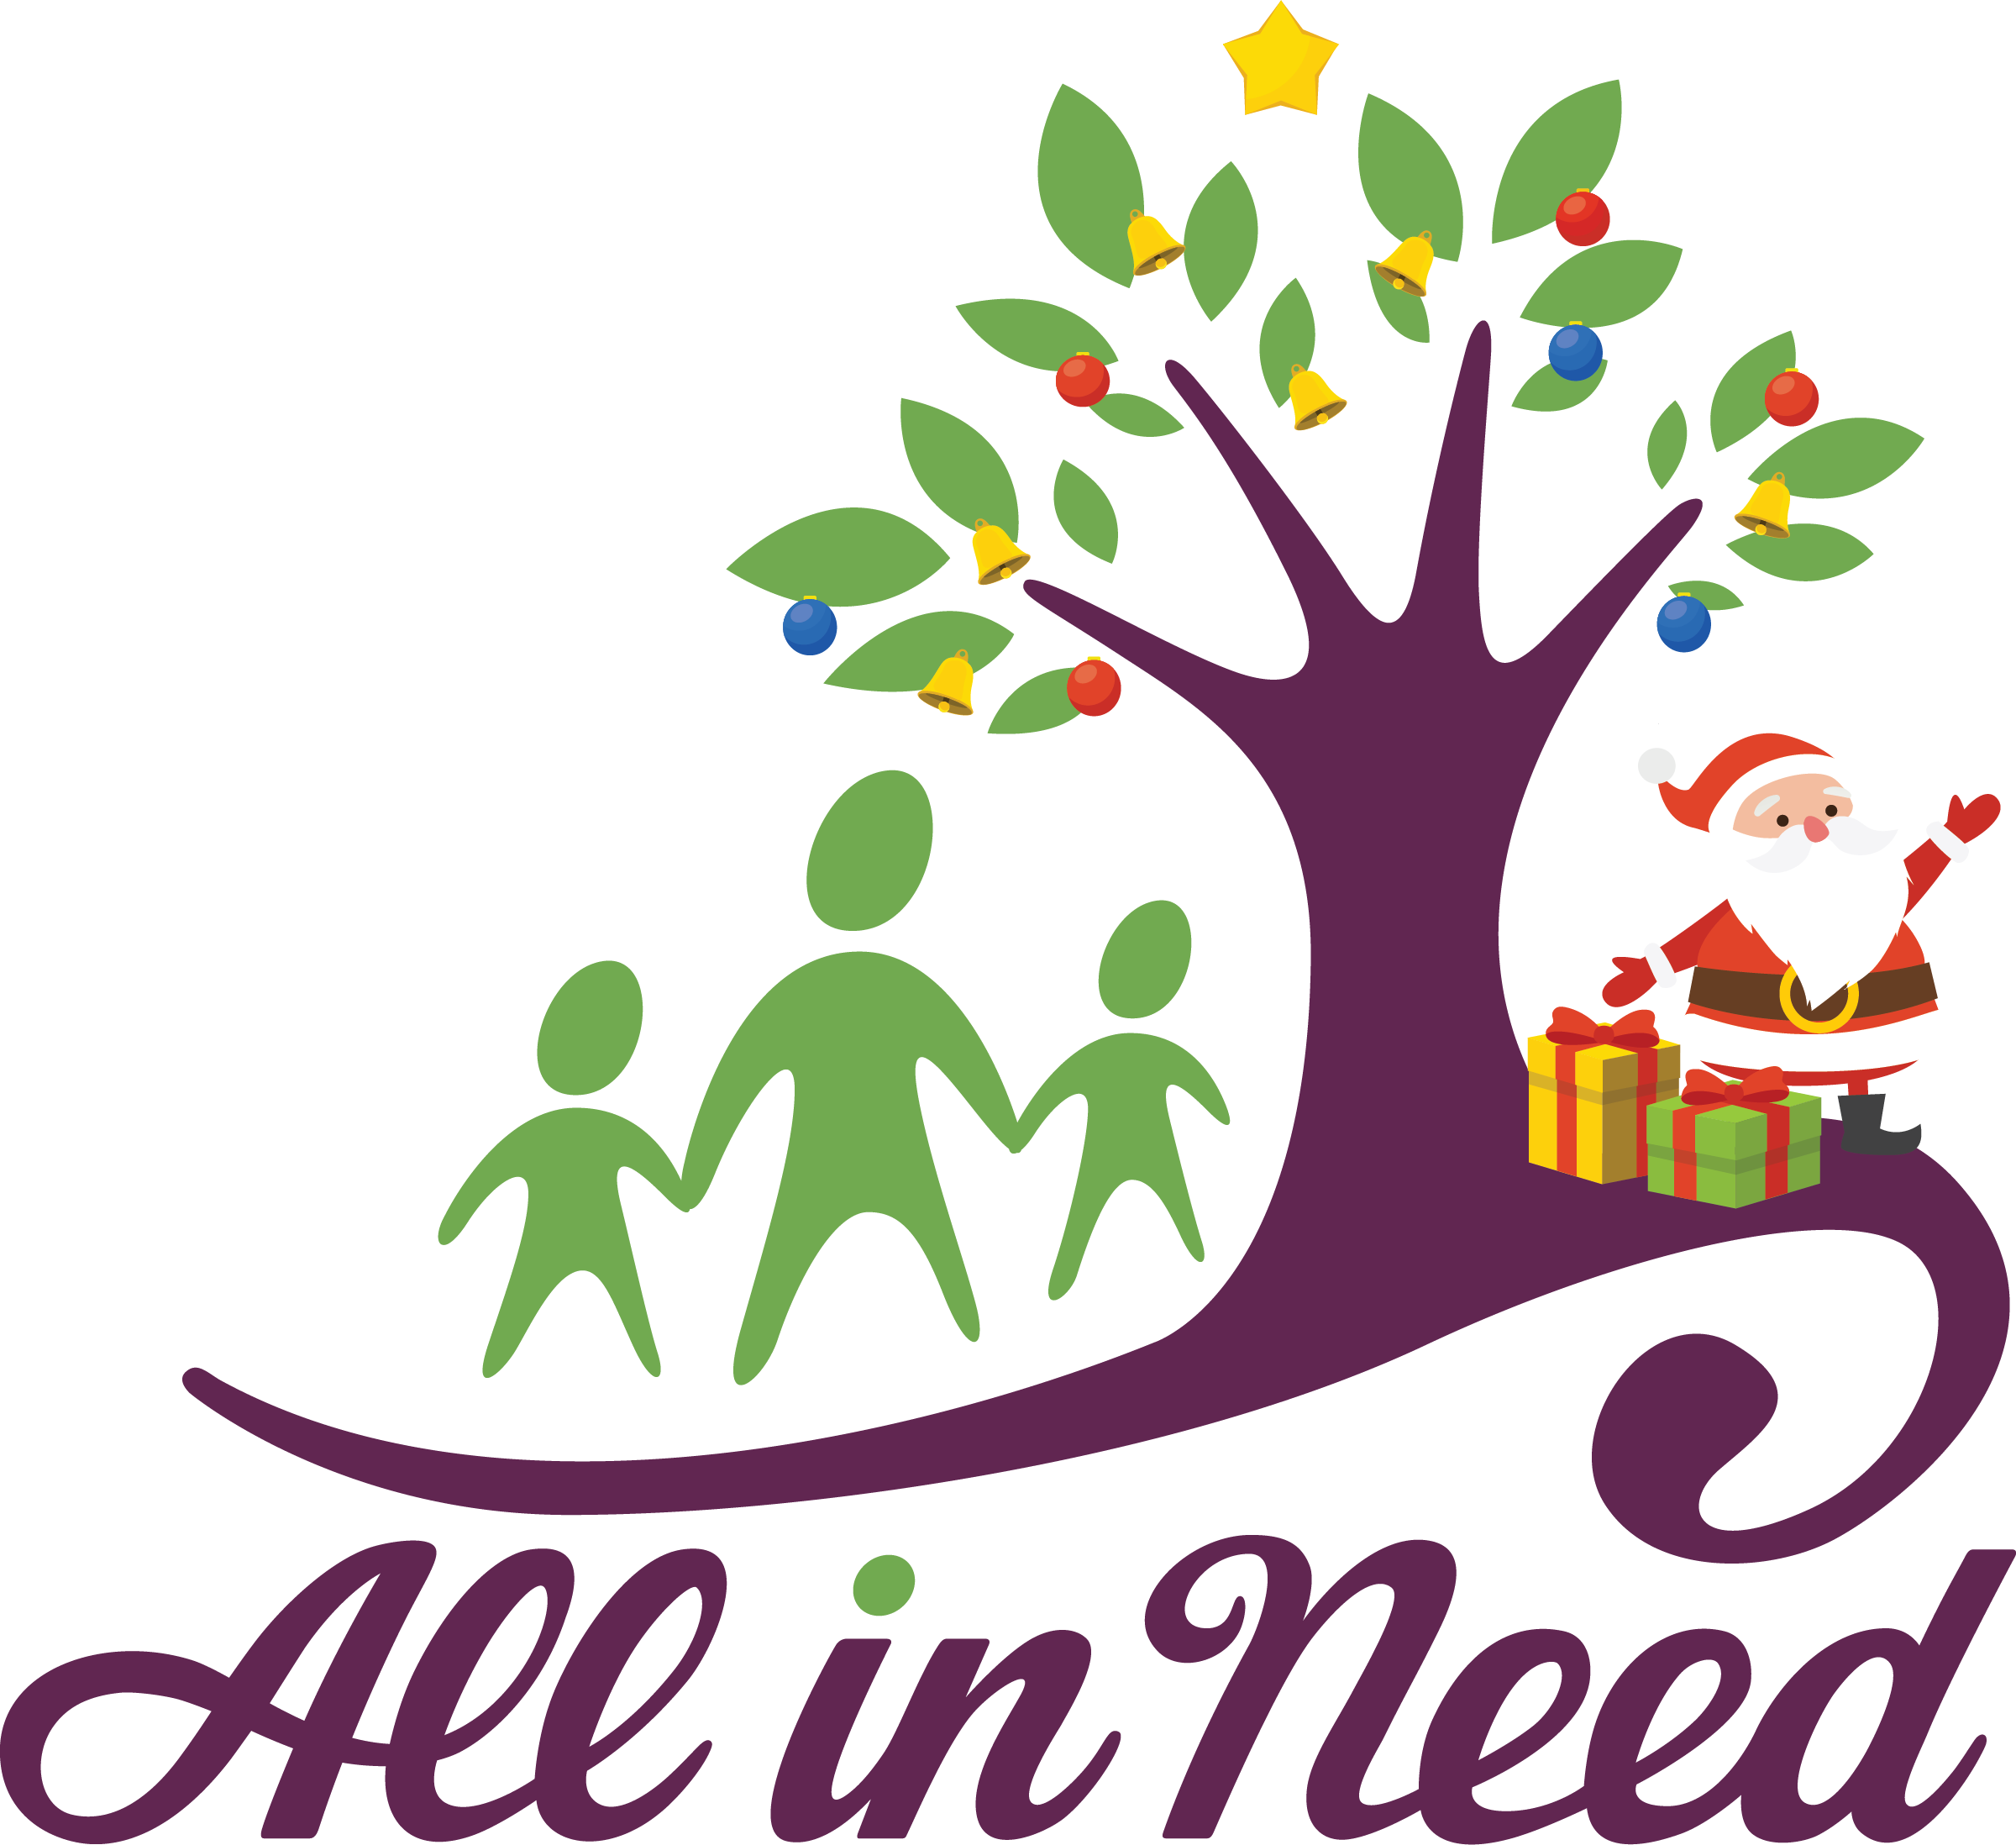 All_In_Need_Event Logos_CHRISTMAS.png